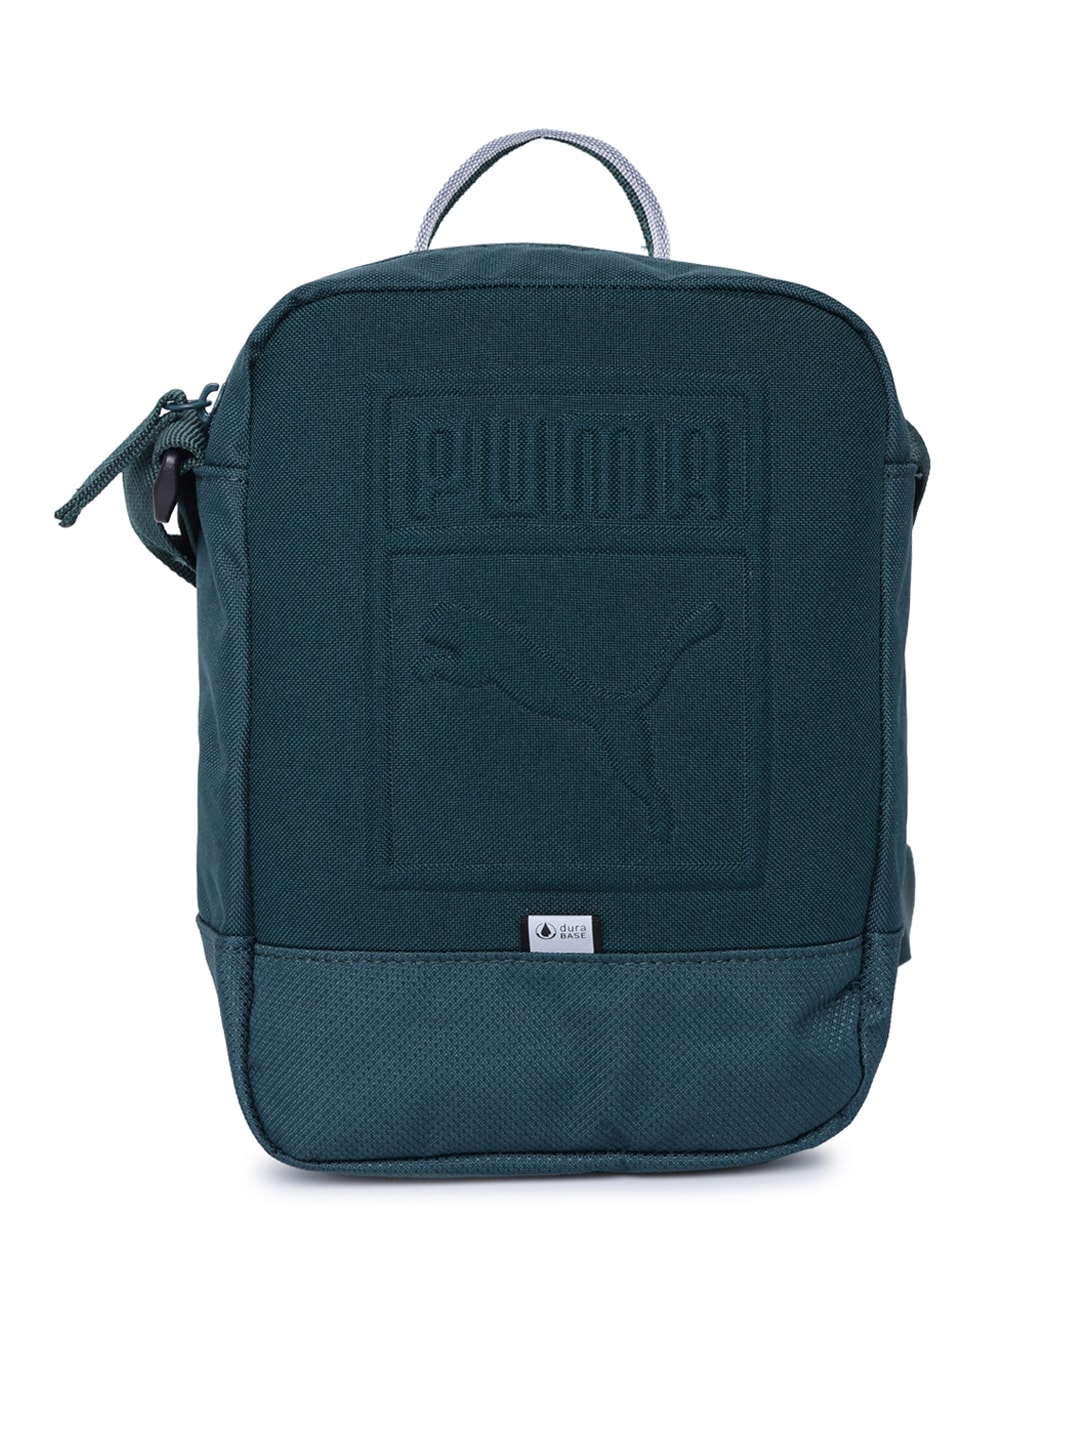 5918471e9a Bags Of Puma Tablet Sleeve - Buy Bags Of Puma Tablet Sleeve online in India